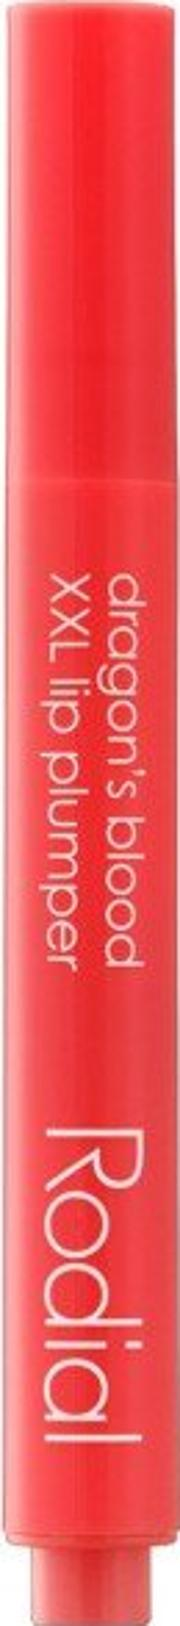 Rodial , Dragon's Blood Lip Plumper 3ml